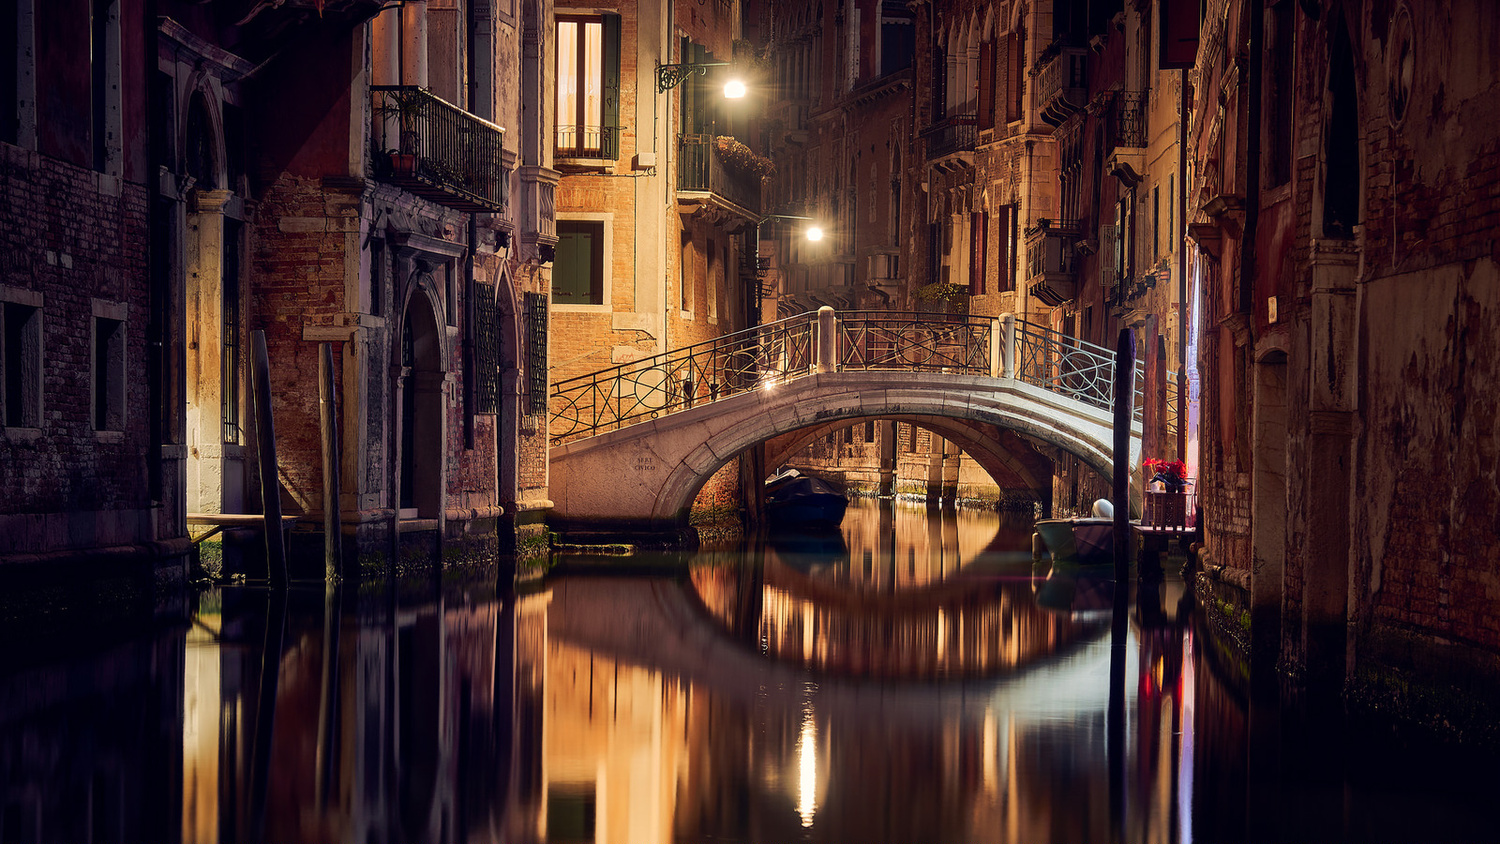 Night Bridge by denis lomme